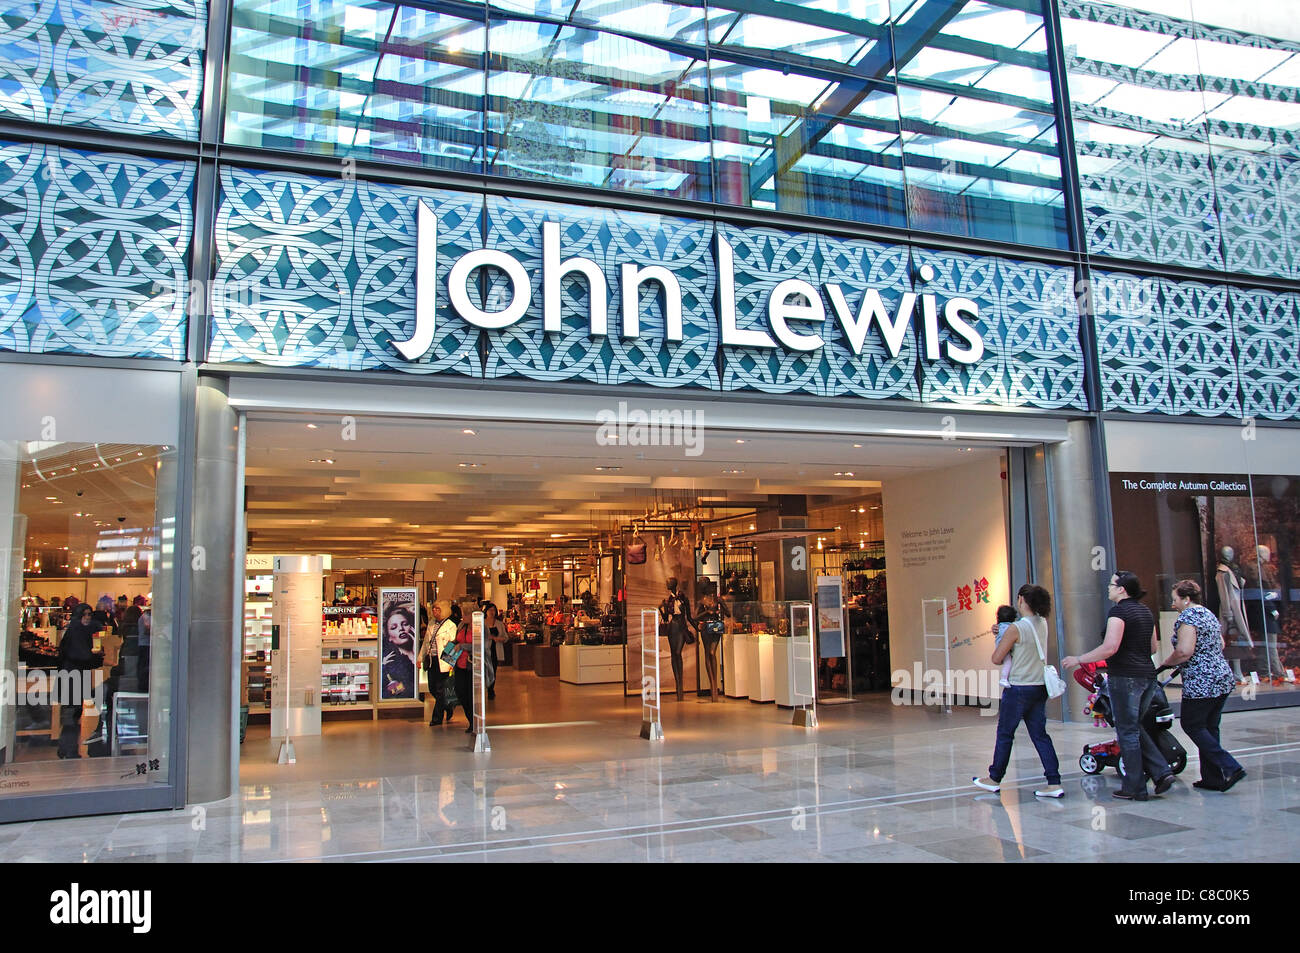 john lewis store entrance westfield shopping centre stratford city stock photo 39601945 alamy. Black Bedroom Furniture Sets. Home Design Ideas